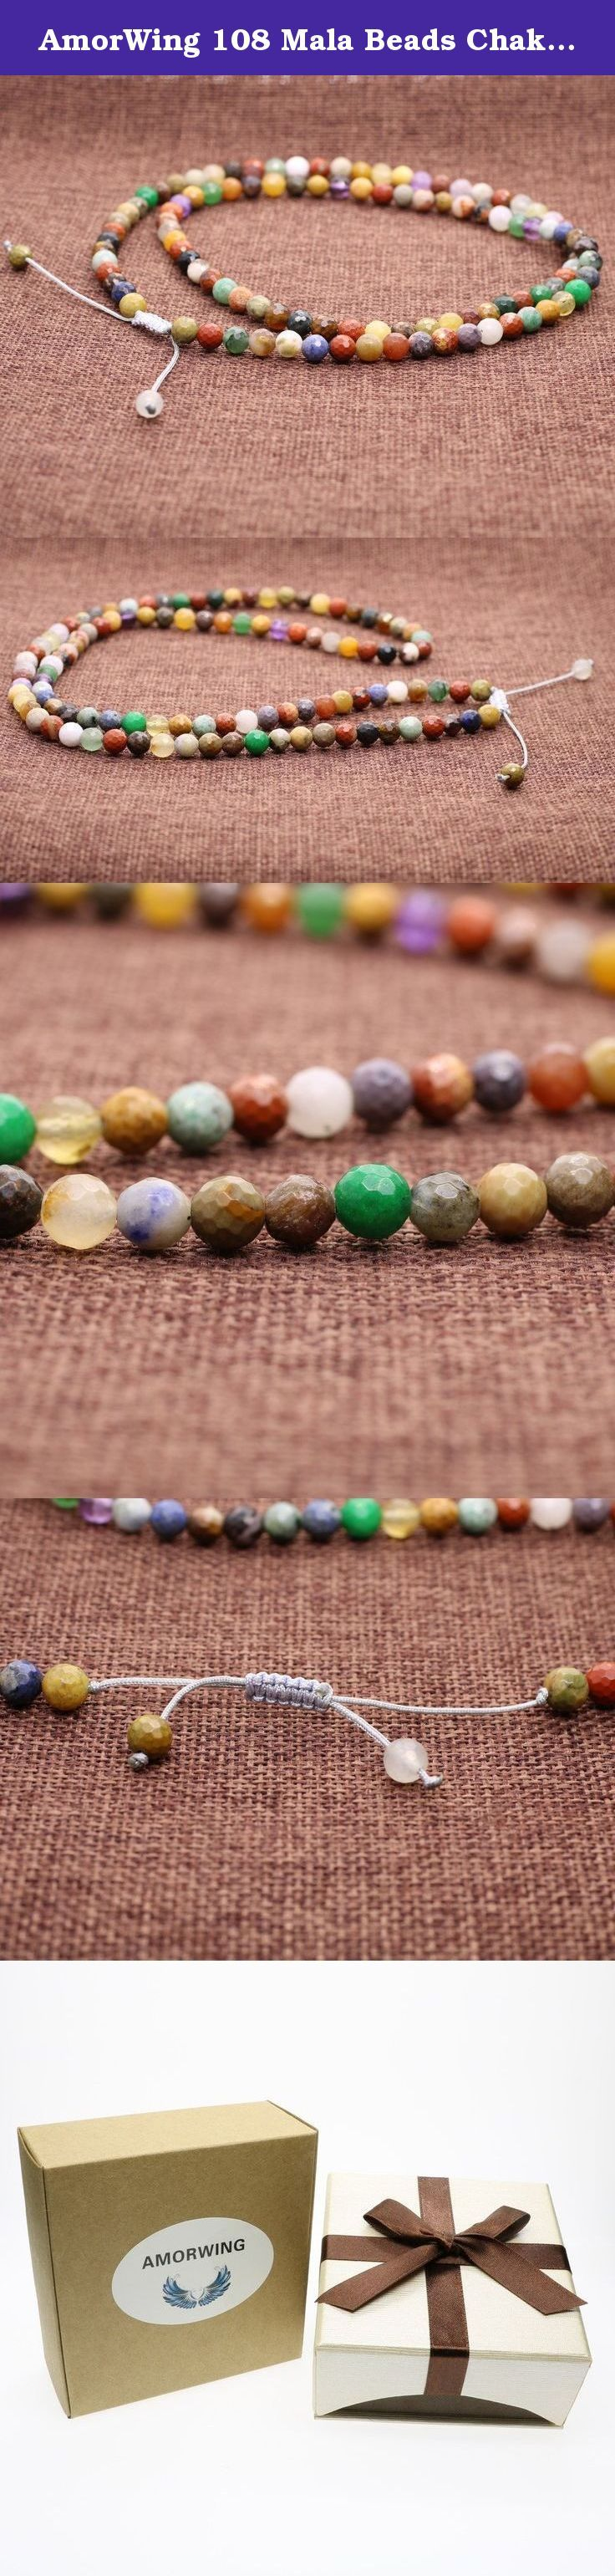 AmorWing 108 Mala Beads Chakra Faceted Multicolor Semi Precious Stones Crystals Adjustable Bracelet/Necklace 6mm. 108 Mala Beads, Chakra Stones & Crystals 108 Mala Beads In Tibetan Buddhism, traditionally 108 mala beads are used. Mala beads are used for keeping count while reciting, chanting, or mentally repeating a mantra or the name or names of a deity. It is a tool used to keep your mind on the meditation practice. This Buddhist prayer beads are best for: Love and Purity of Heart. If…